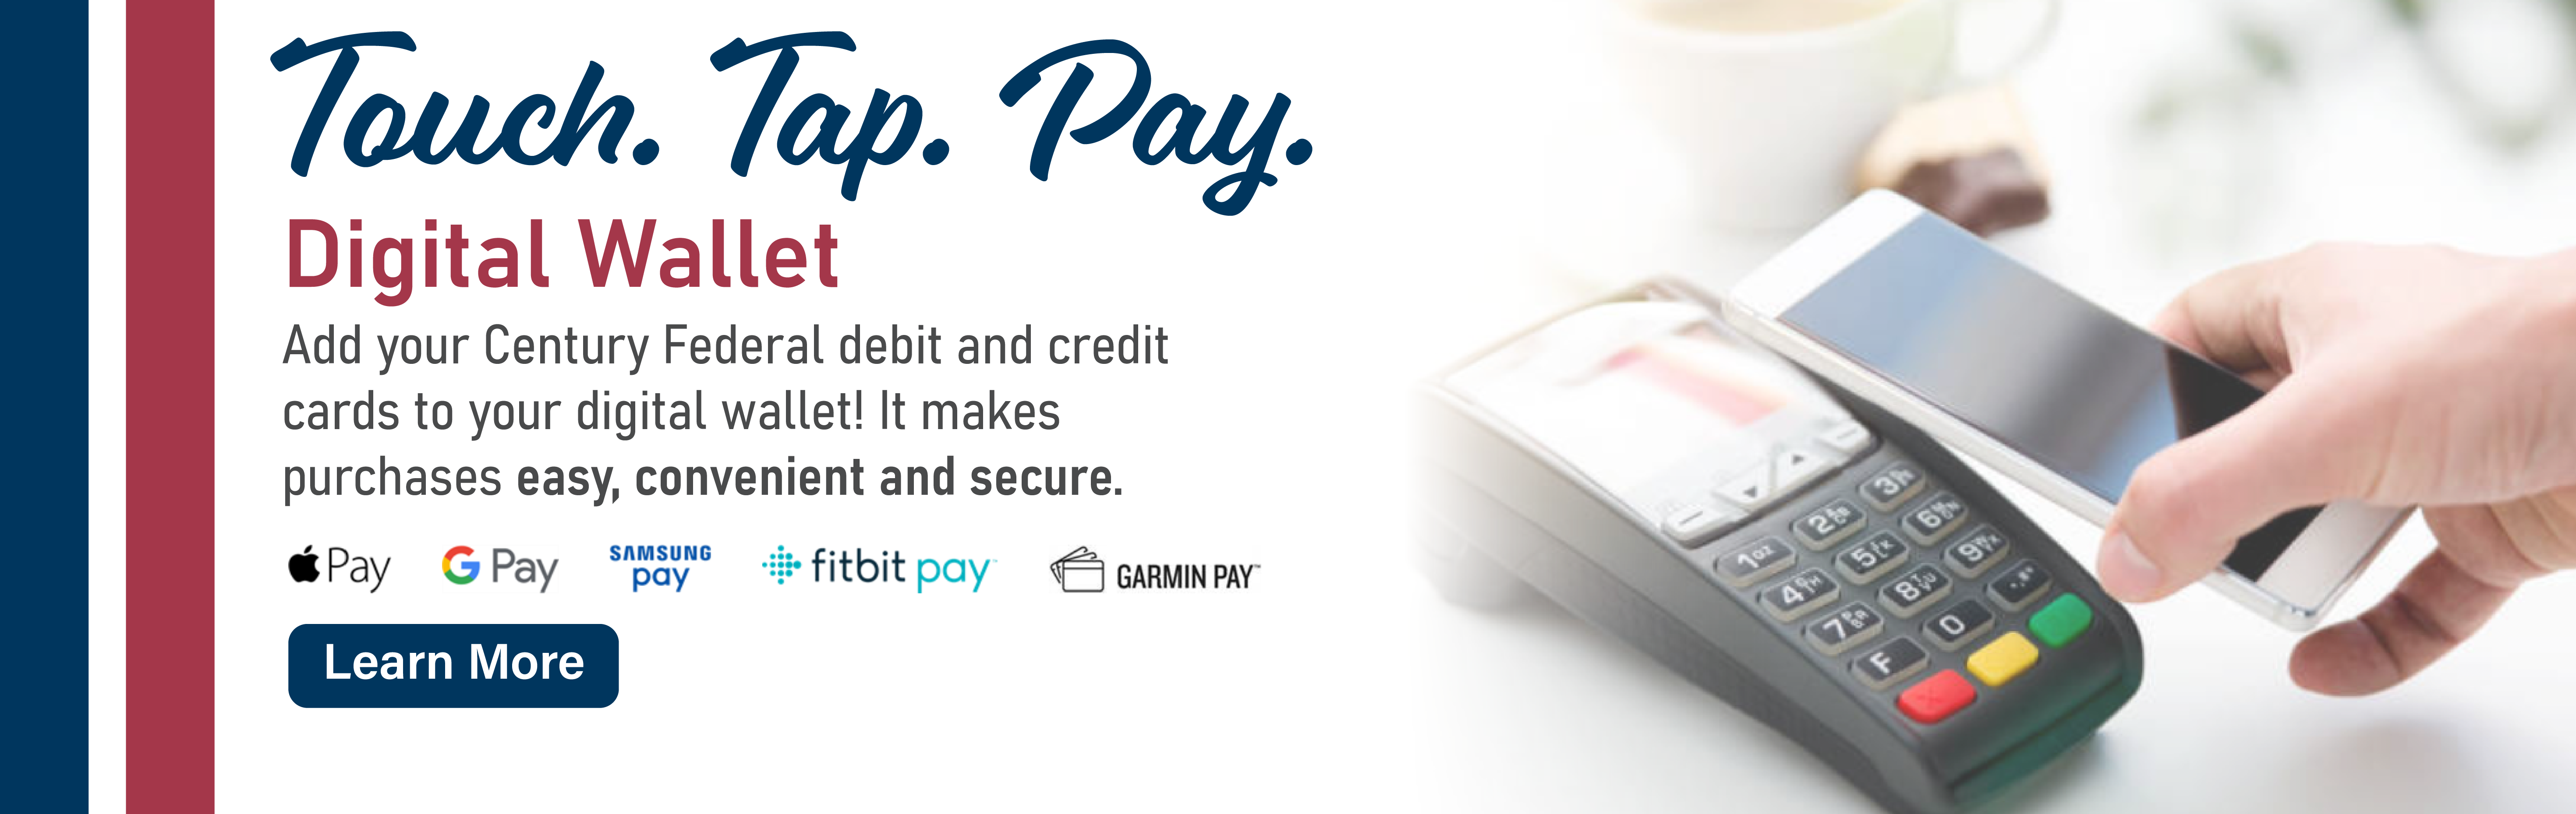 Digital Wallet - Add your Century Federal debit and credit cards to your digital wallet! - Learn More